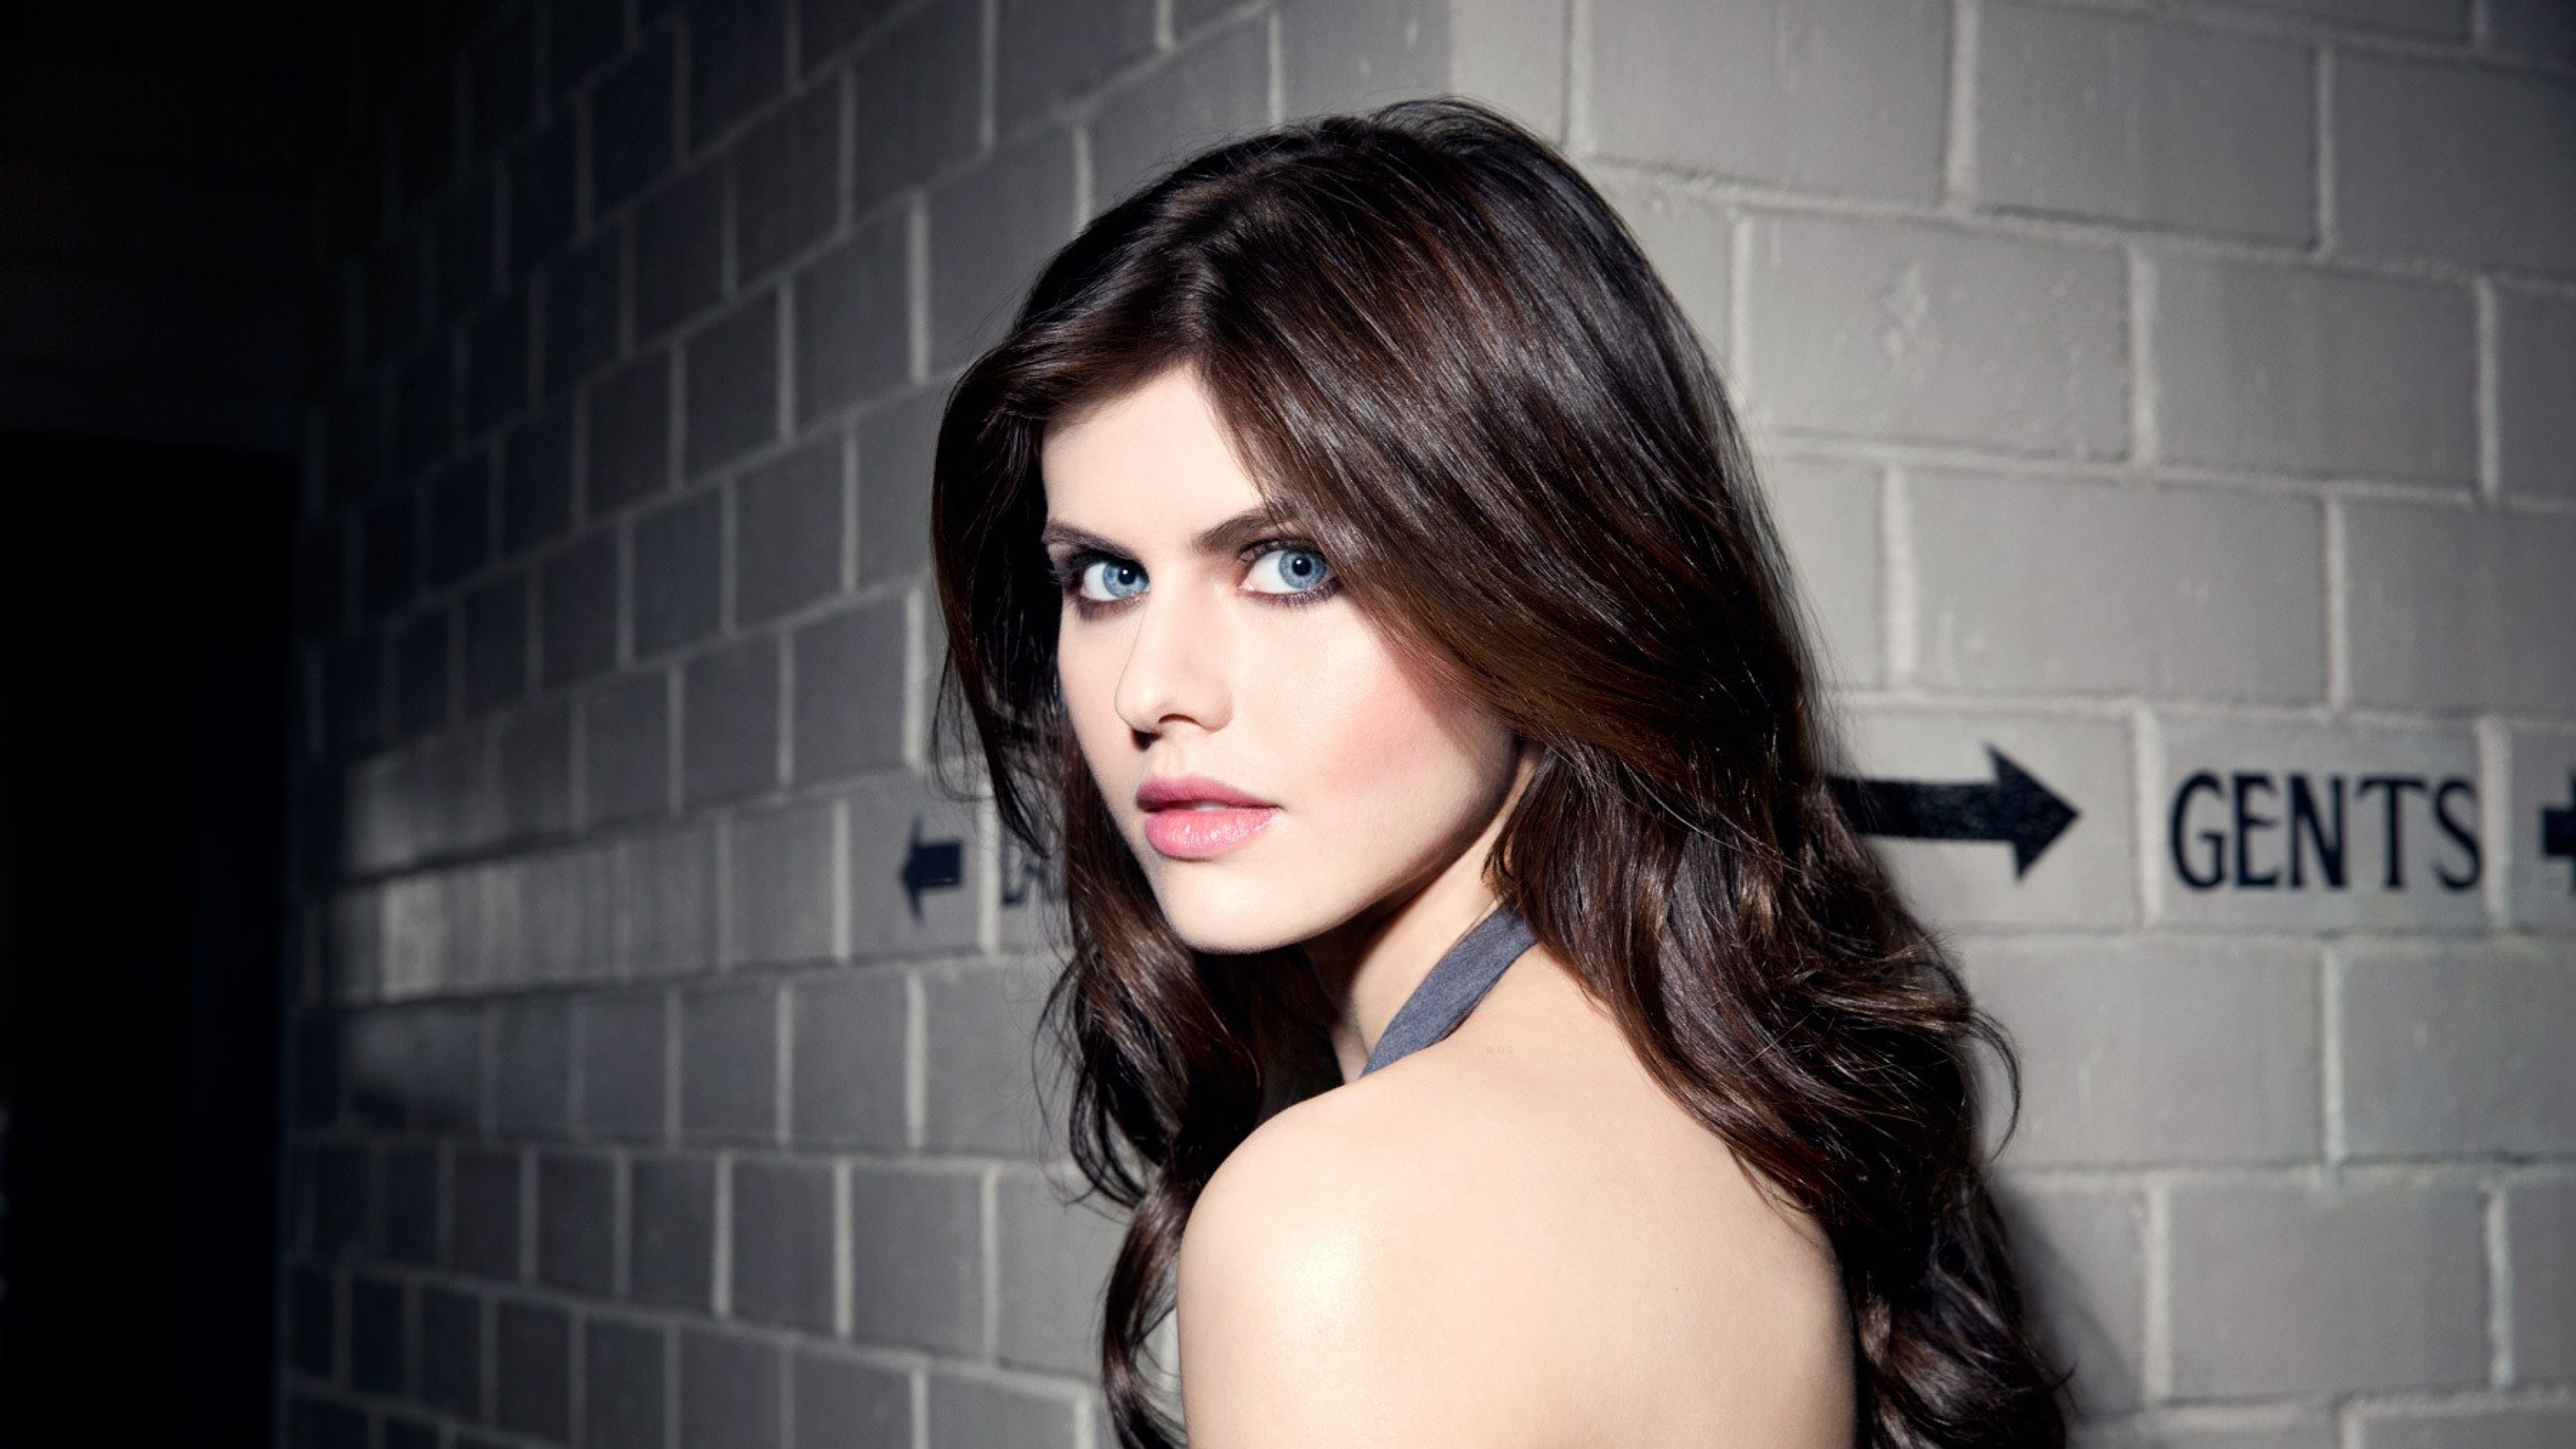 Alexandra Daddario 1366x768 Resolution